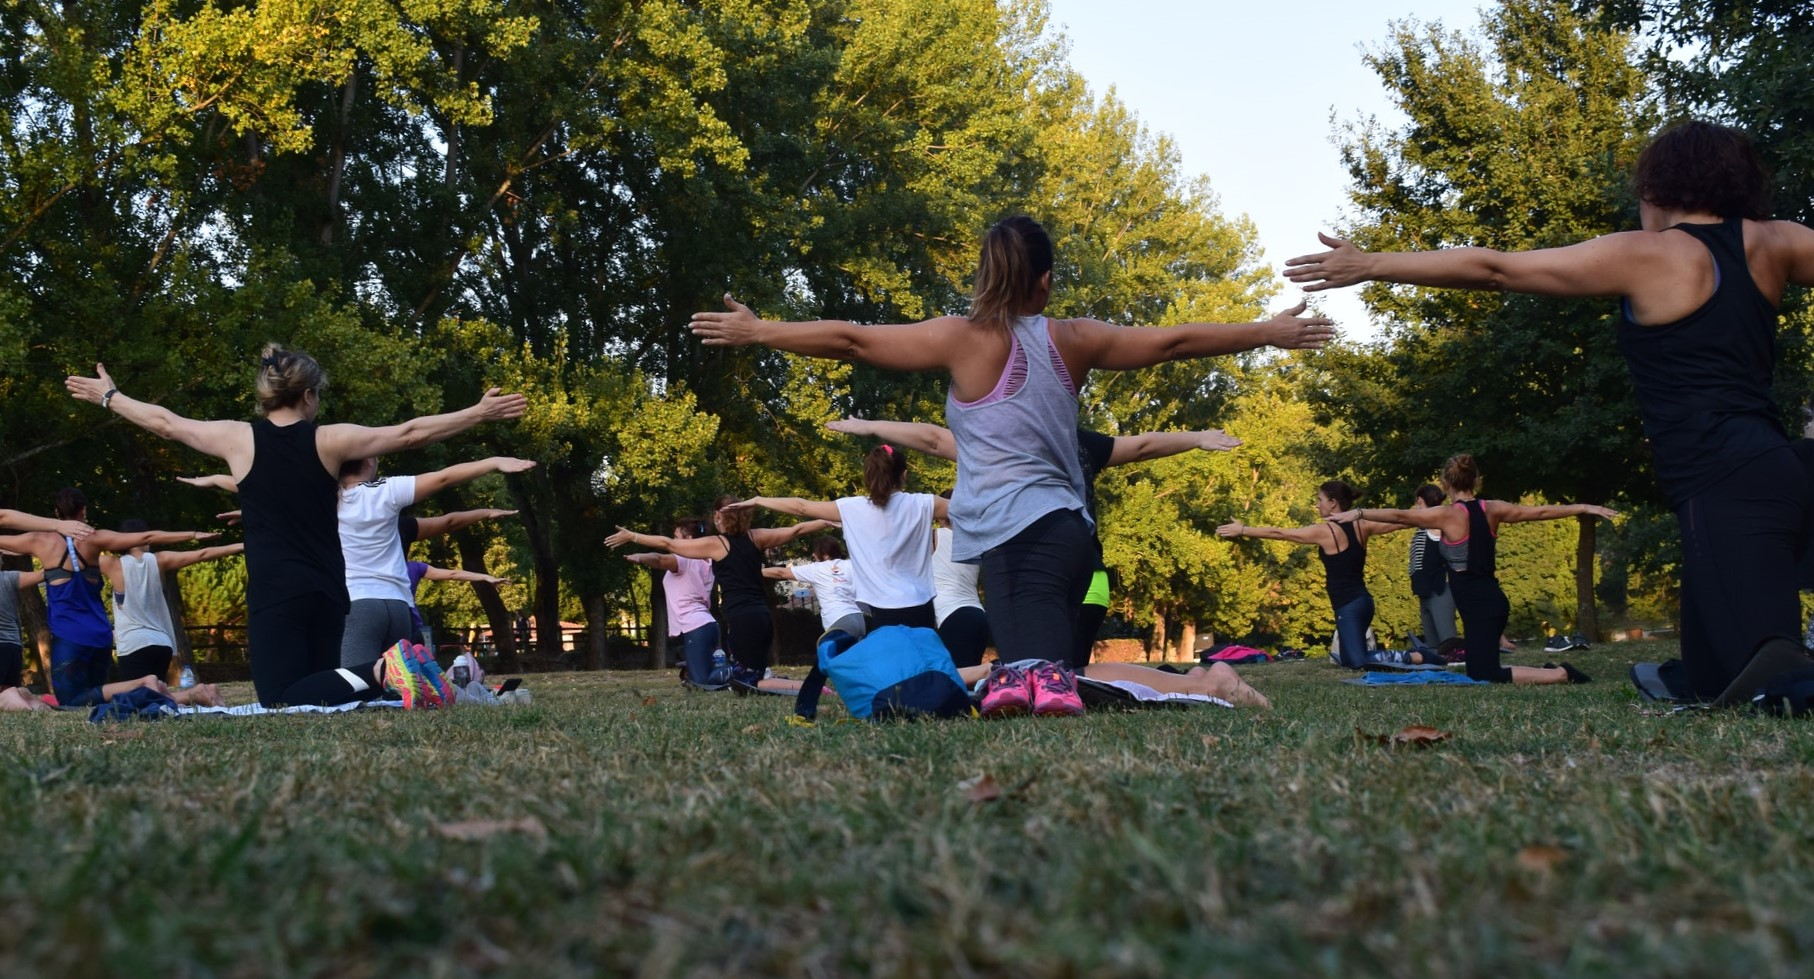 women-performing-yoga-on-green-grass-near-trees-1472887 (1)